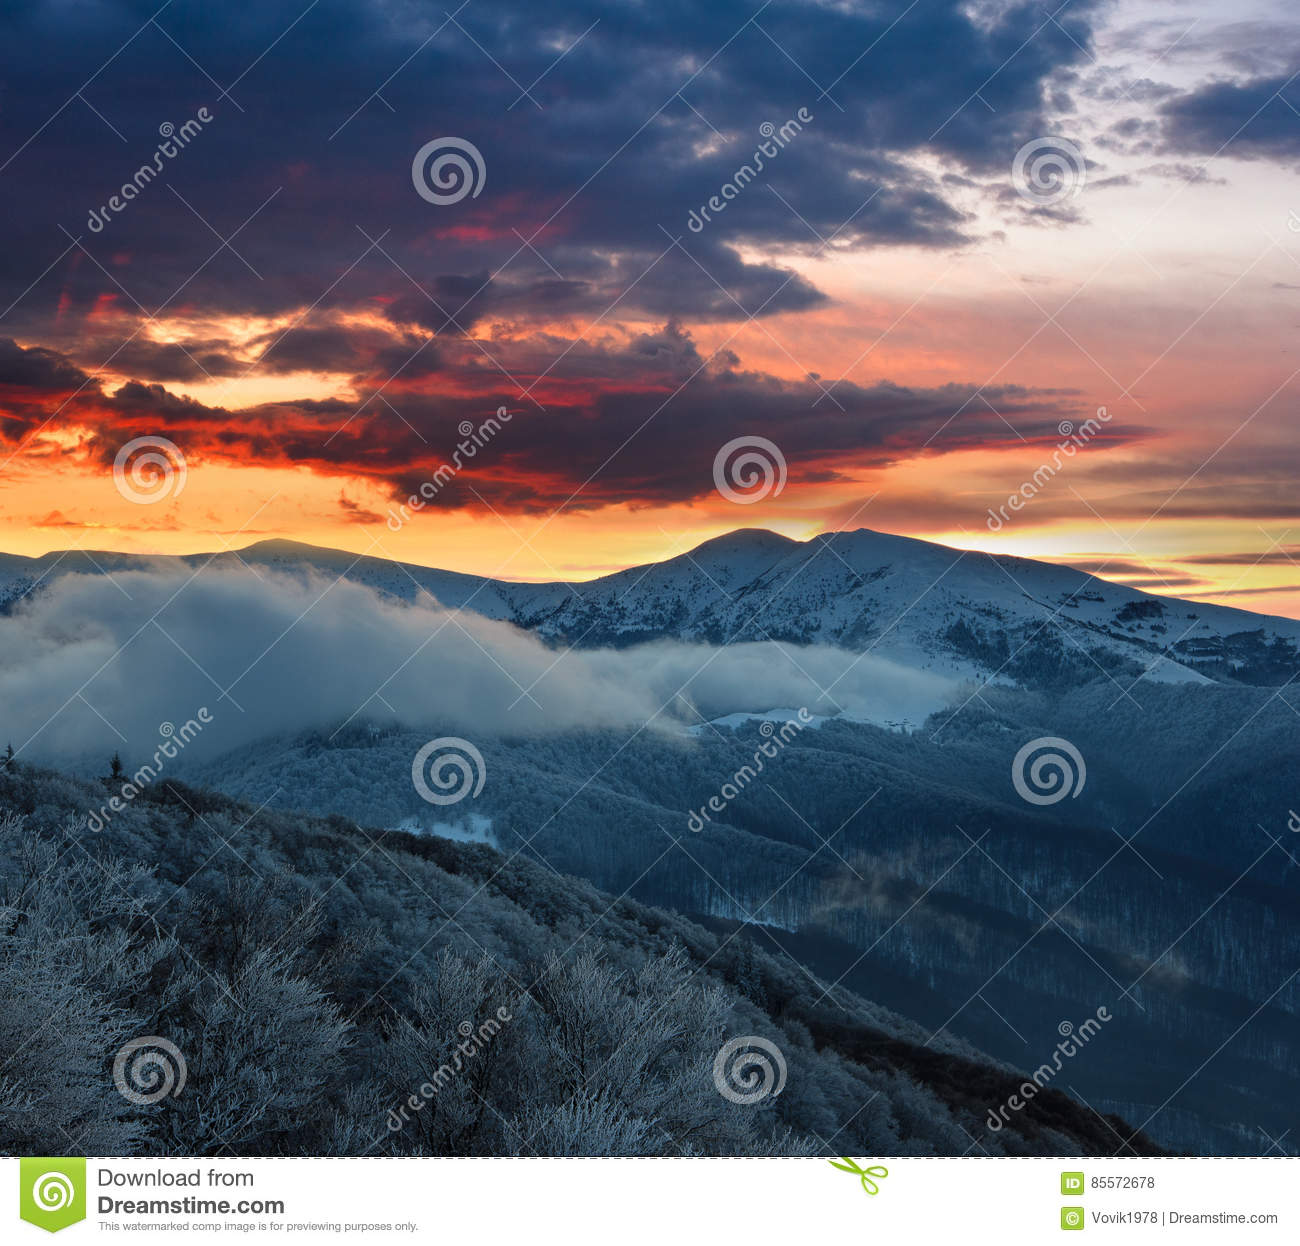 Beautiful landscape in the winter mountains at sunrise.